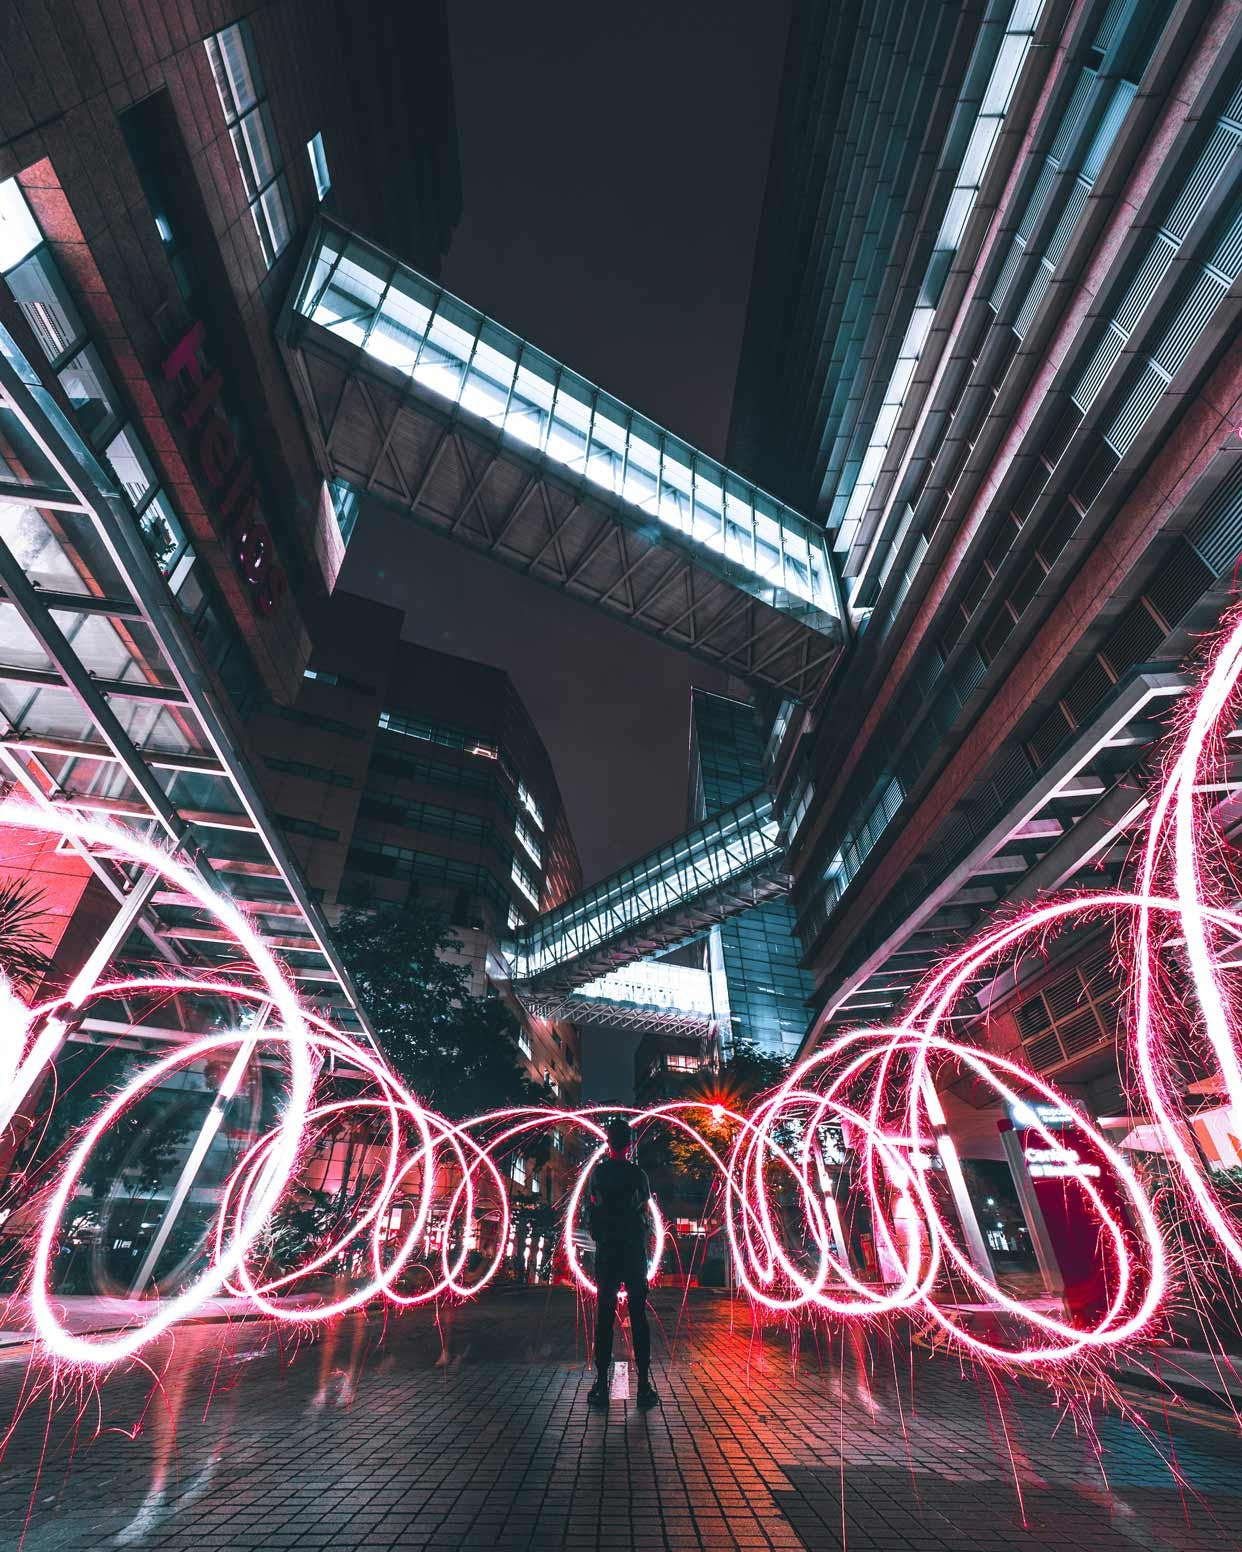 Light Trail Painting at Helios on Biopolis